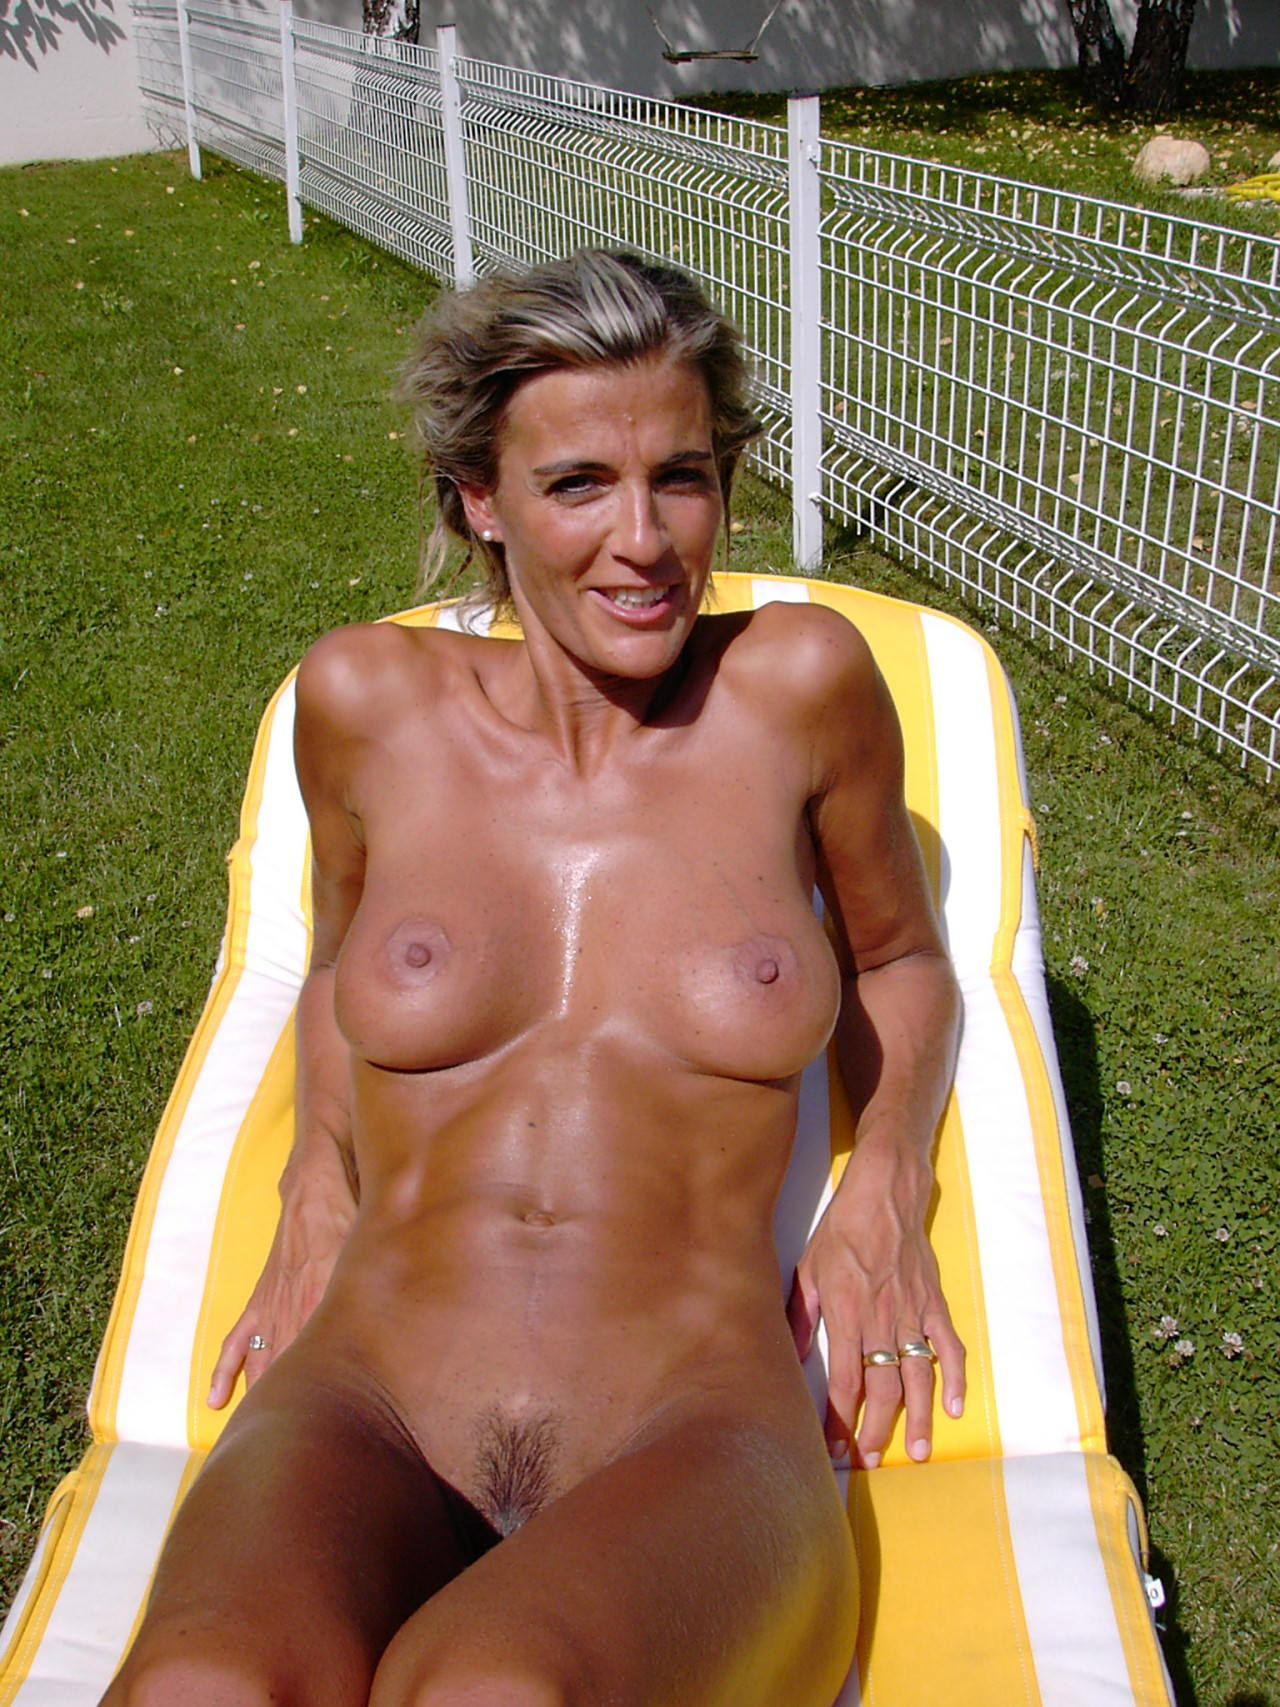 Mature sportsman naked #4